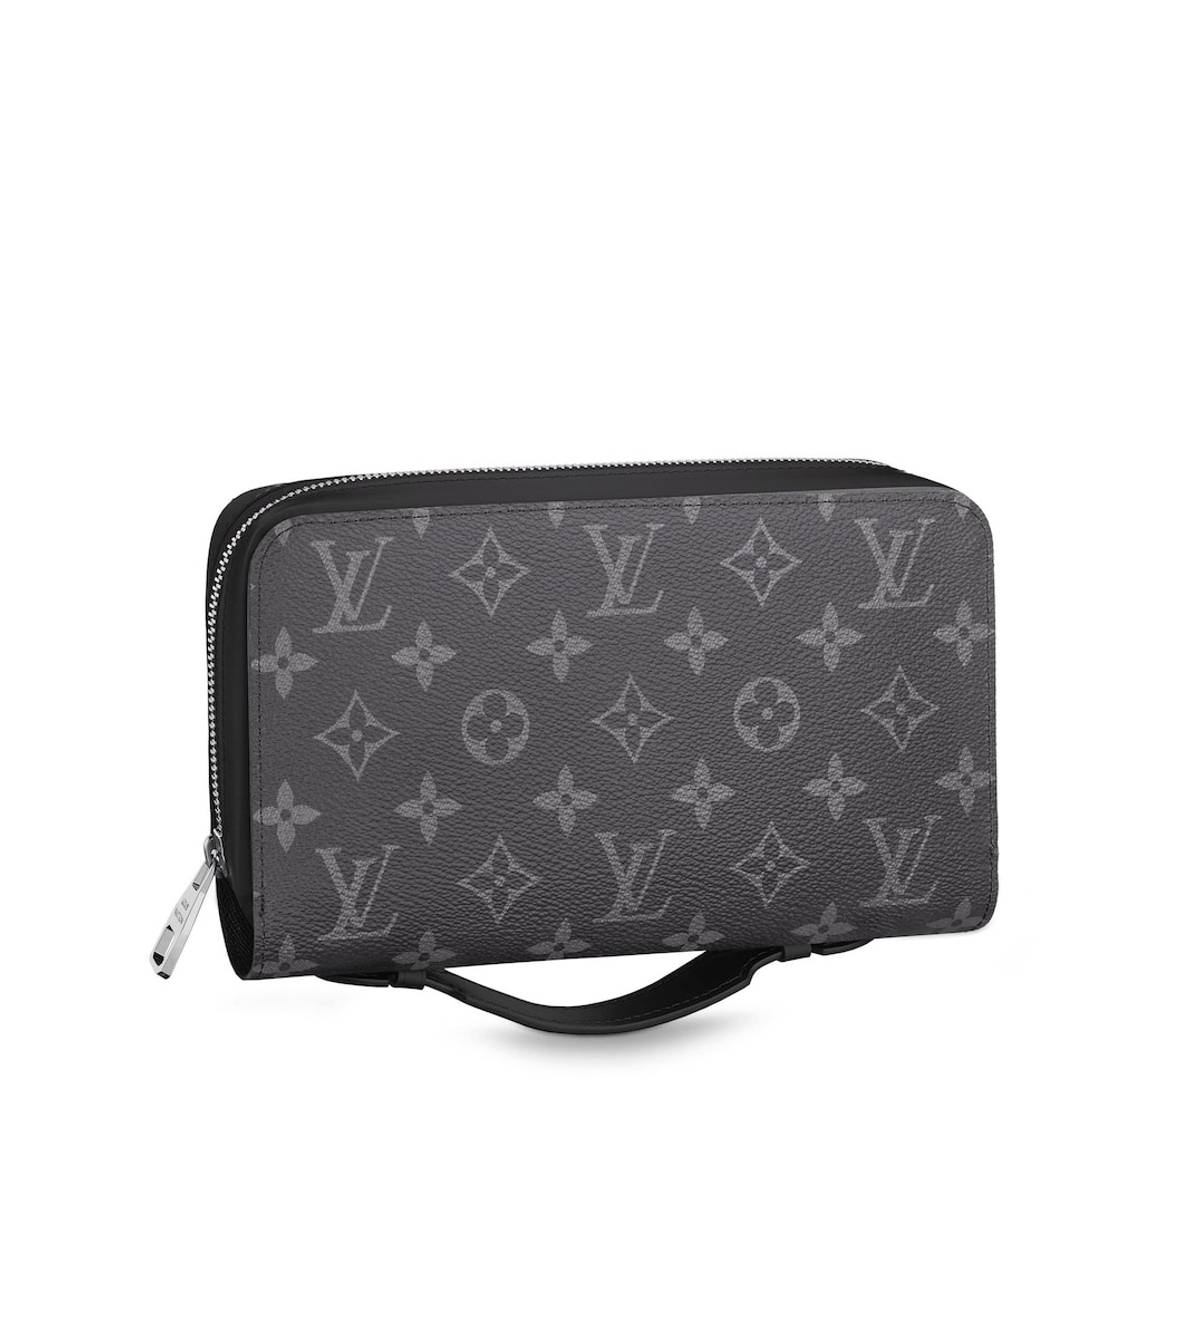 8d0ad77636a1 Louis Vuitton ×. Eclipse monogram zippy XL Wallet